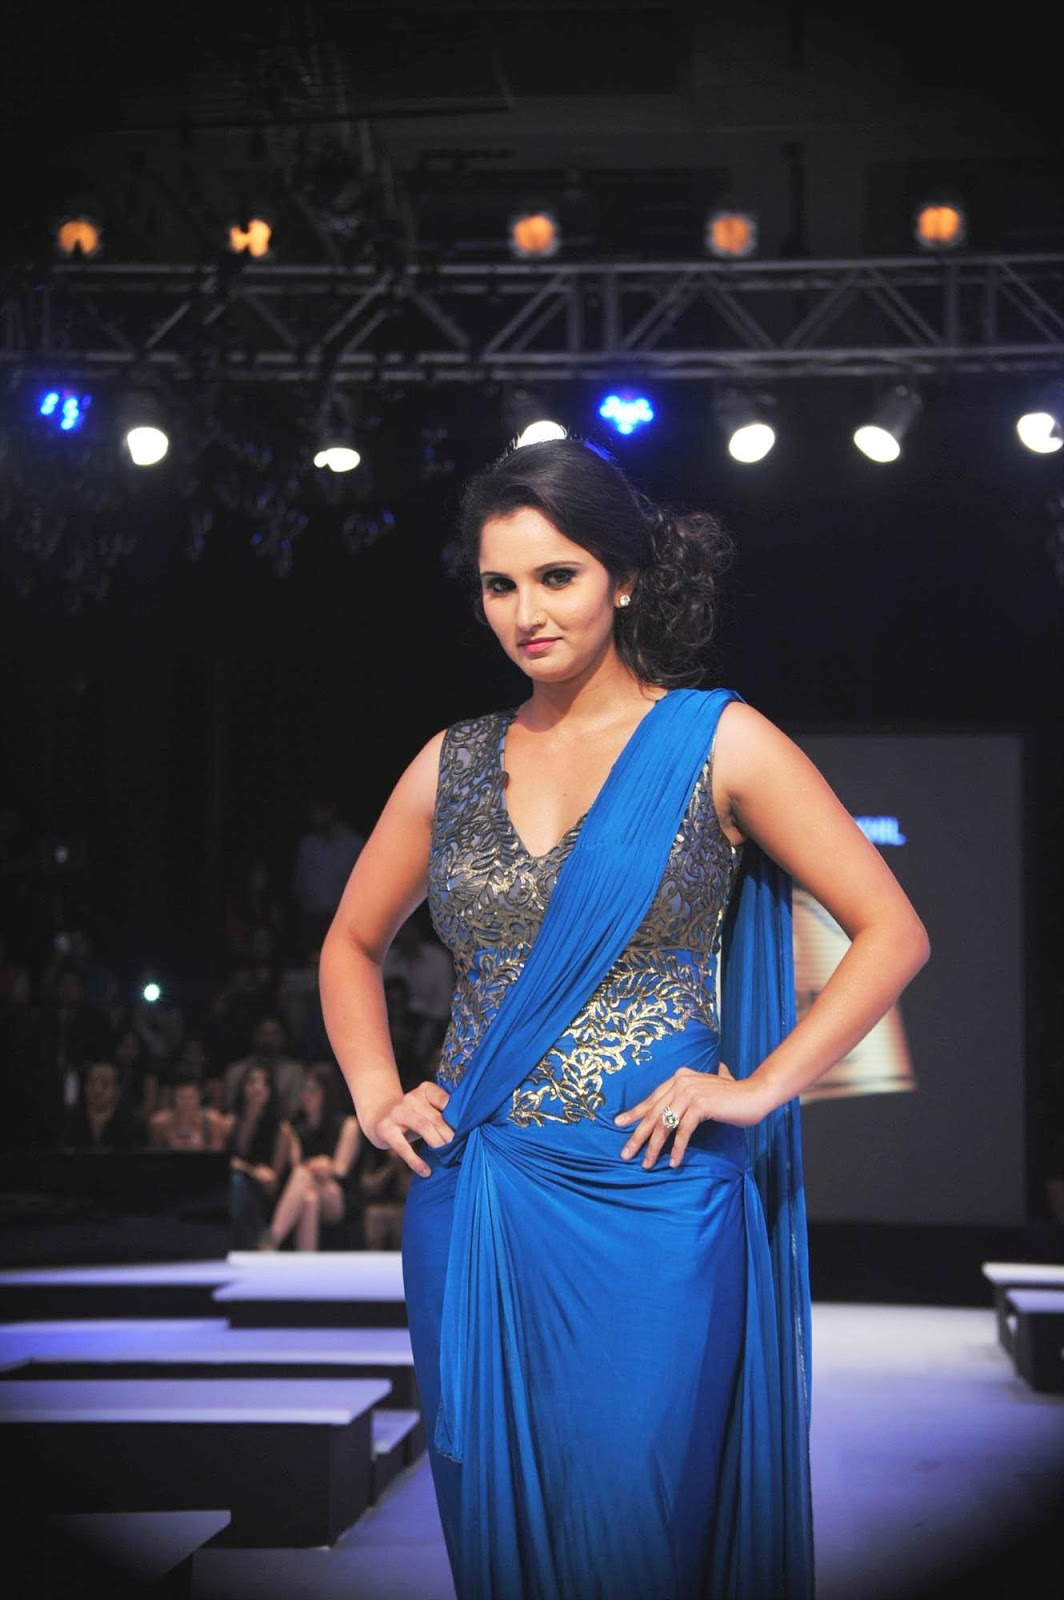 High Quality Bollywood Celebrity Pictures Sania Mirza -7316